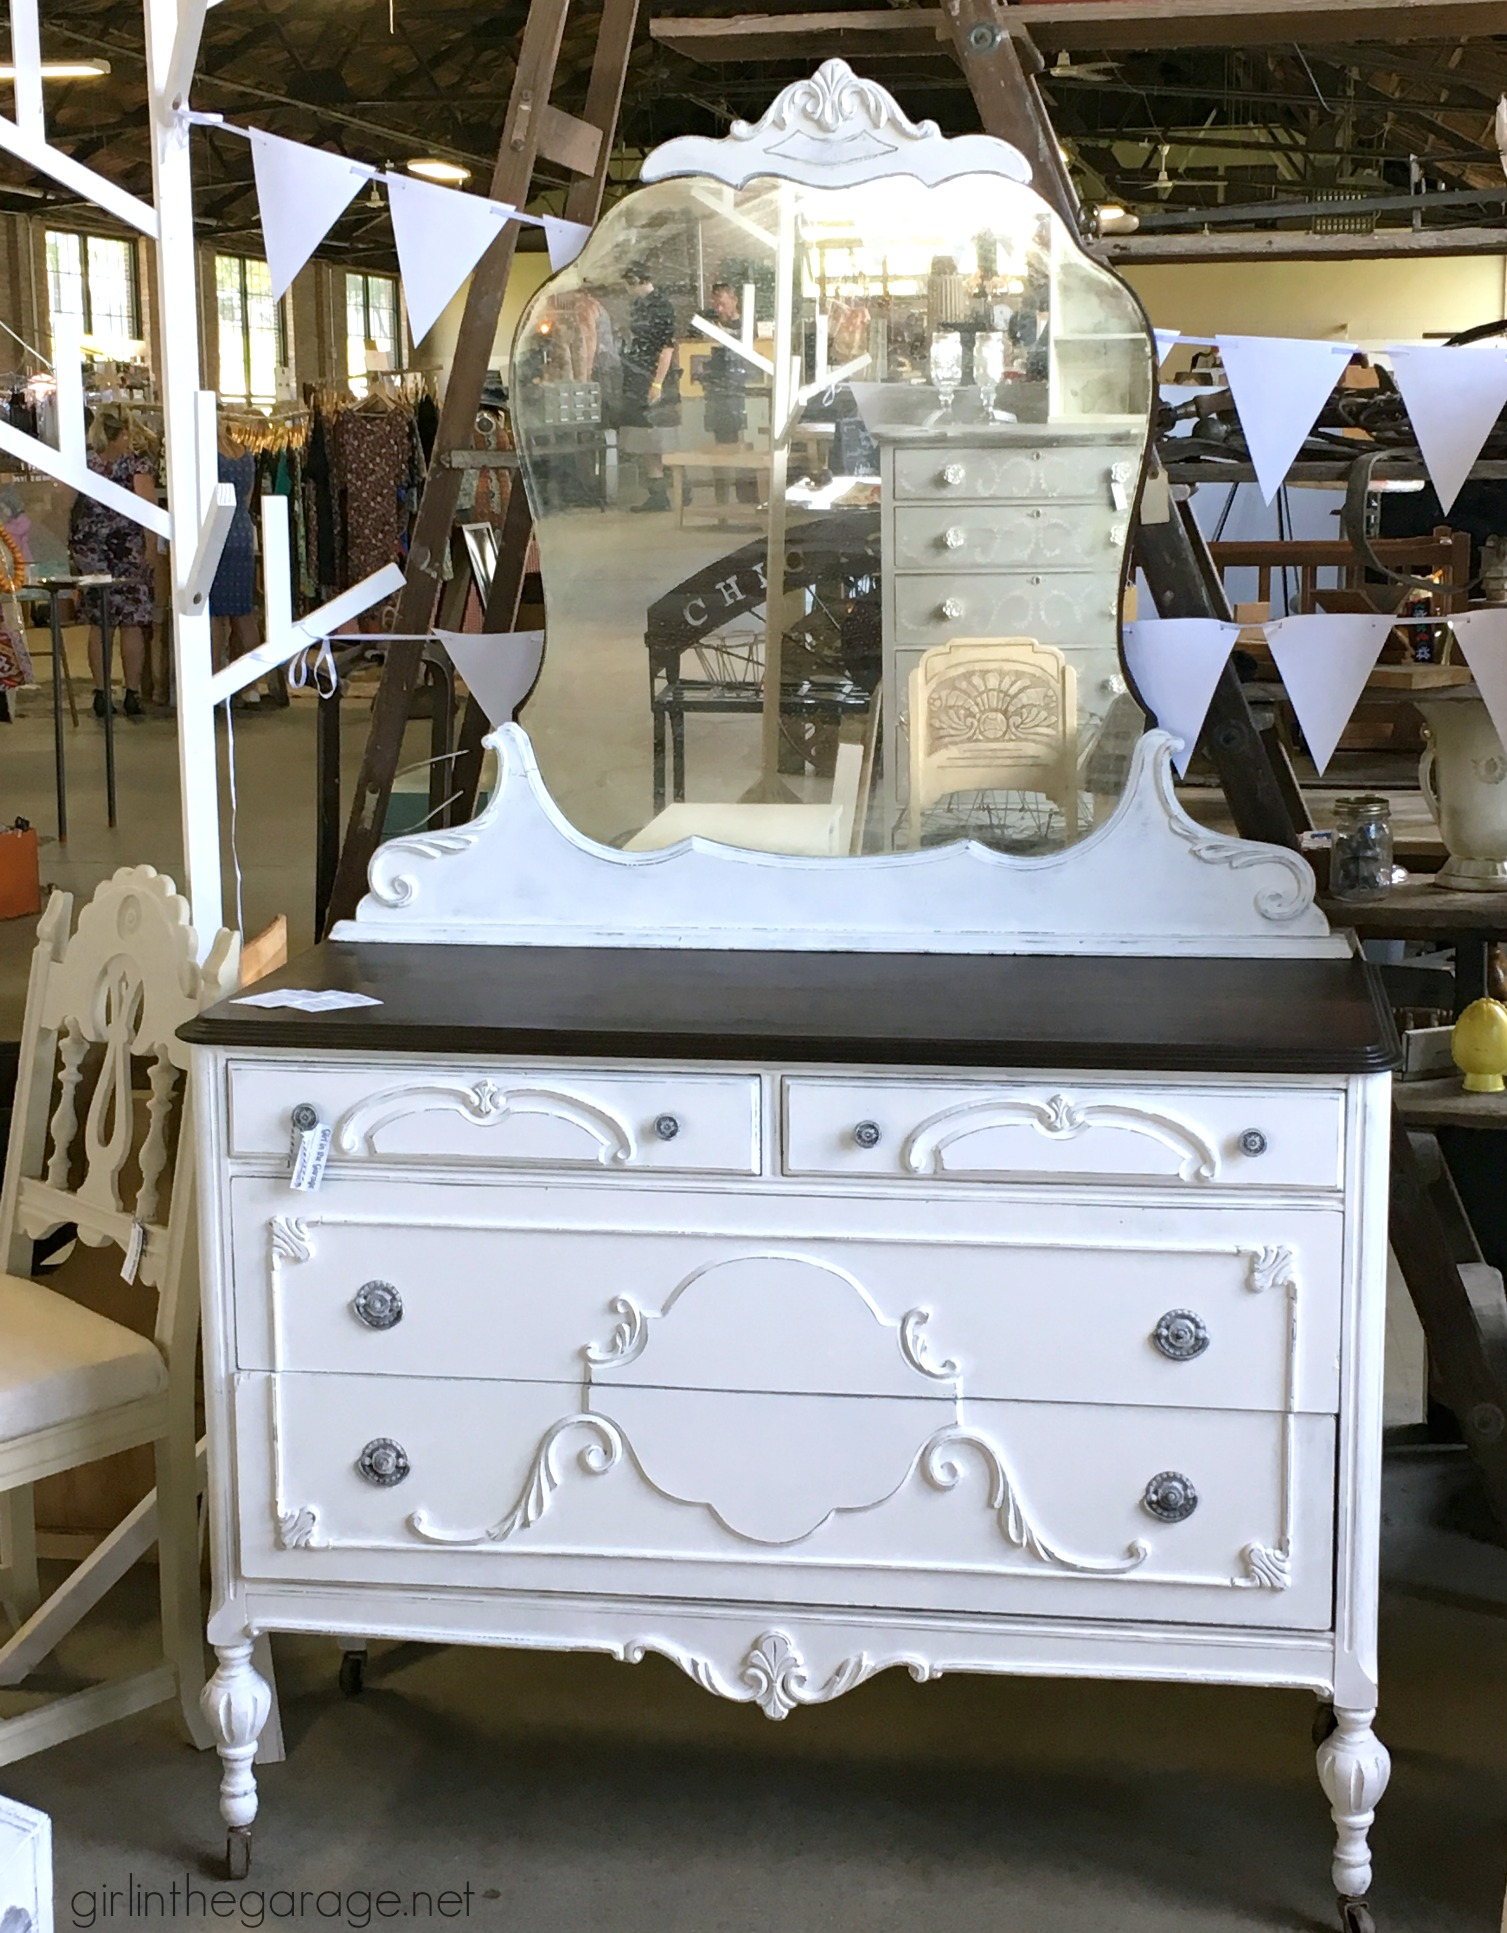 How to repair and revive an antique vanity makeover - Girl in the Garage - The Antique Vanity Makeover - Trashy To Treasure - Girl In The Garage®